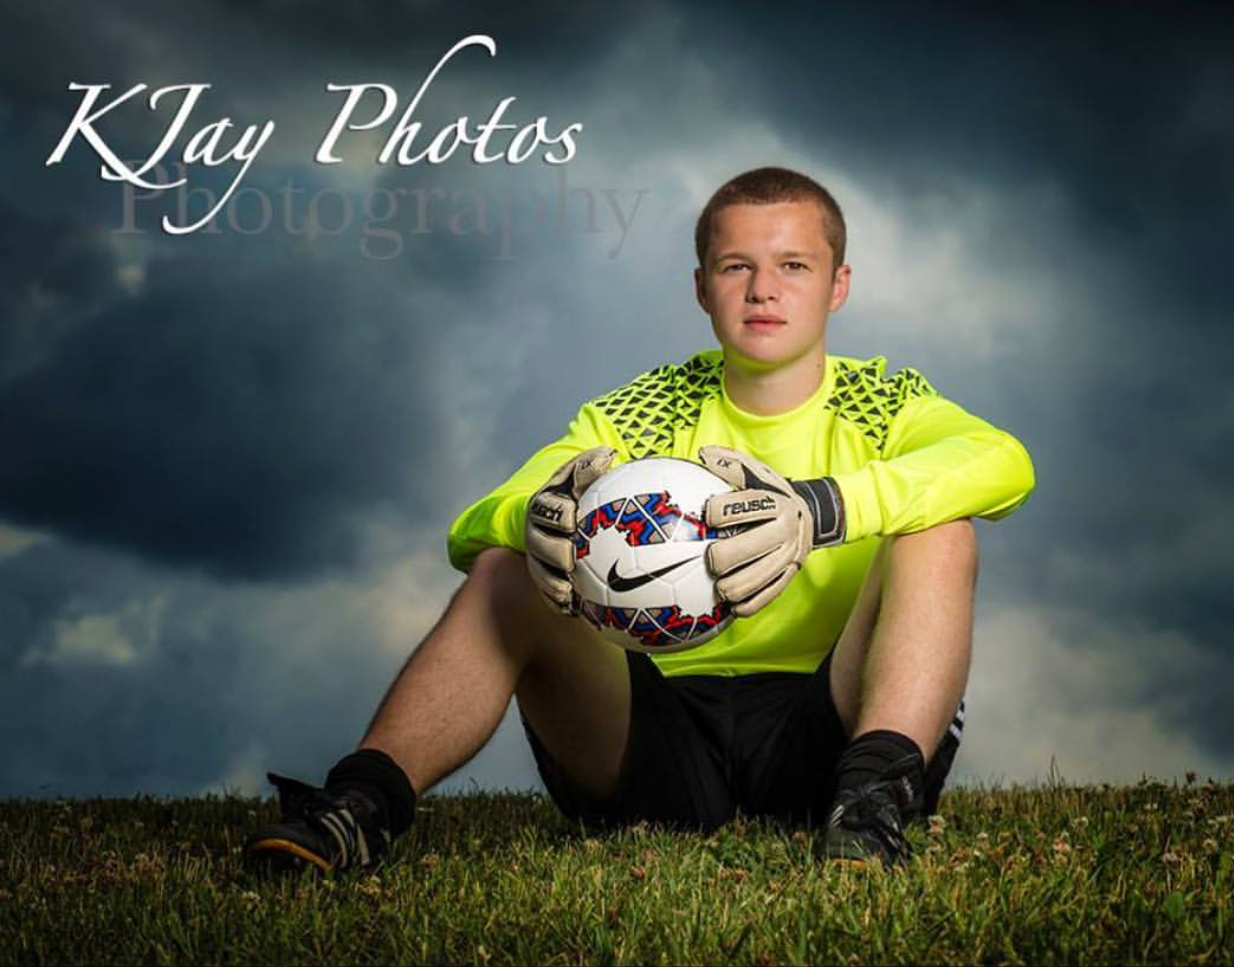 K Jay Photos Photographer captures fierce soccer senior pictures. For more high school senior pictures, visit www.kjayportraits.com